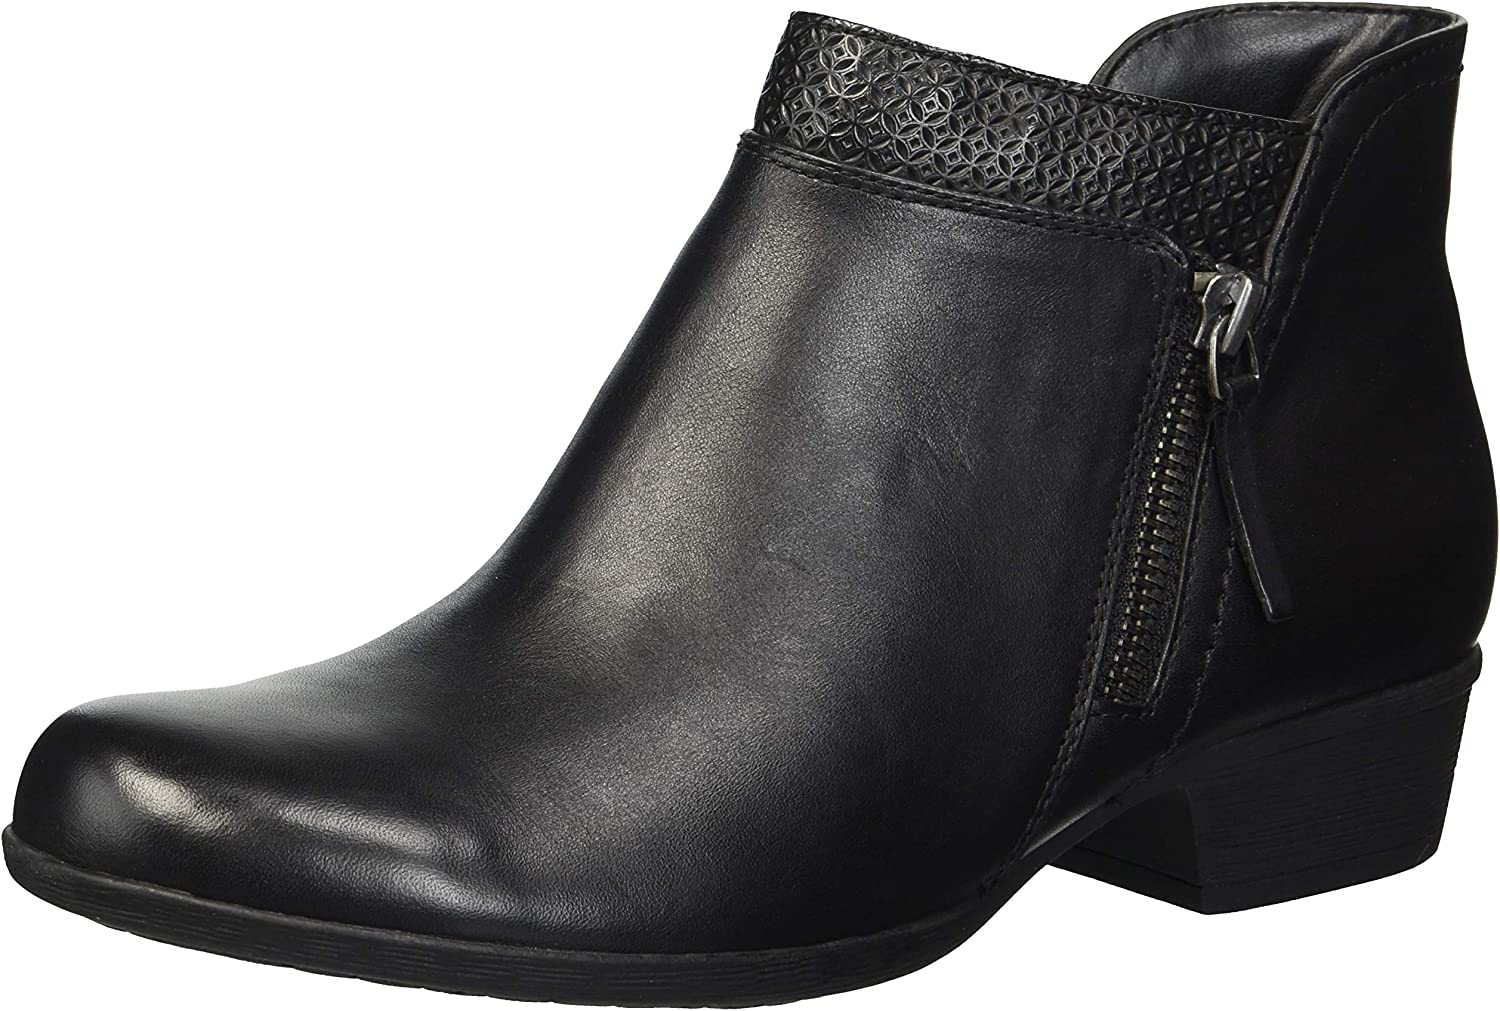 Rockport Womens Carly Bootie Ankle Boot